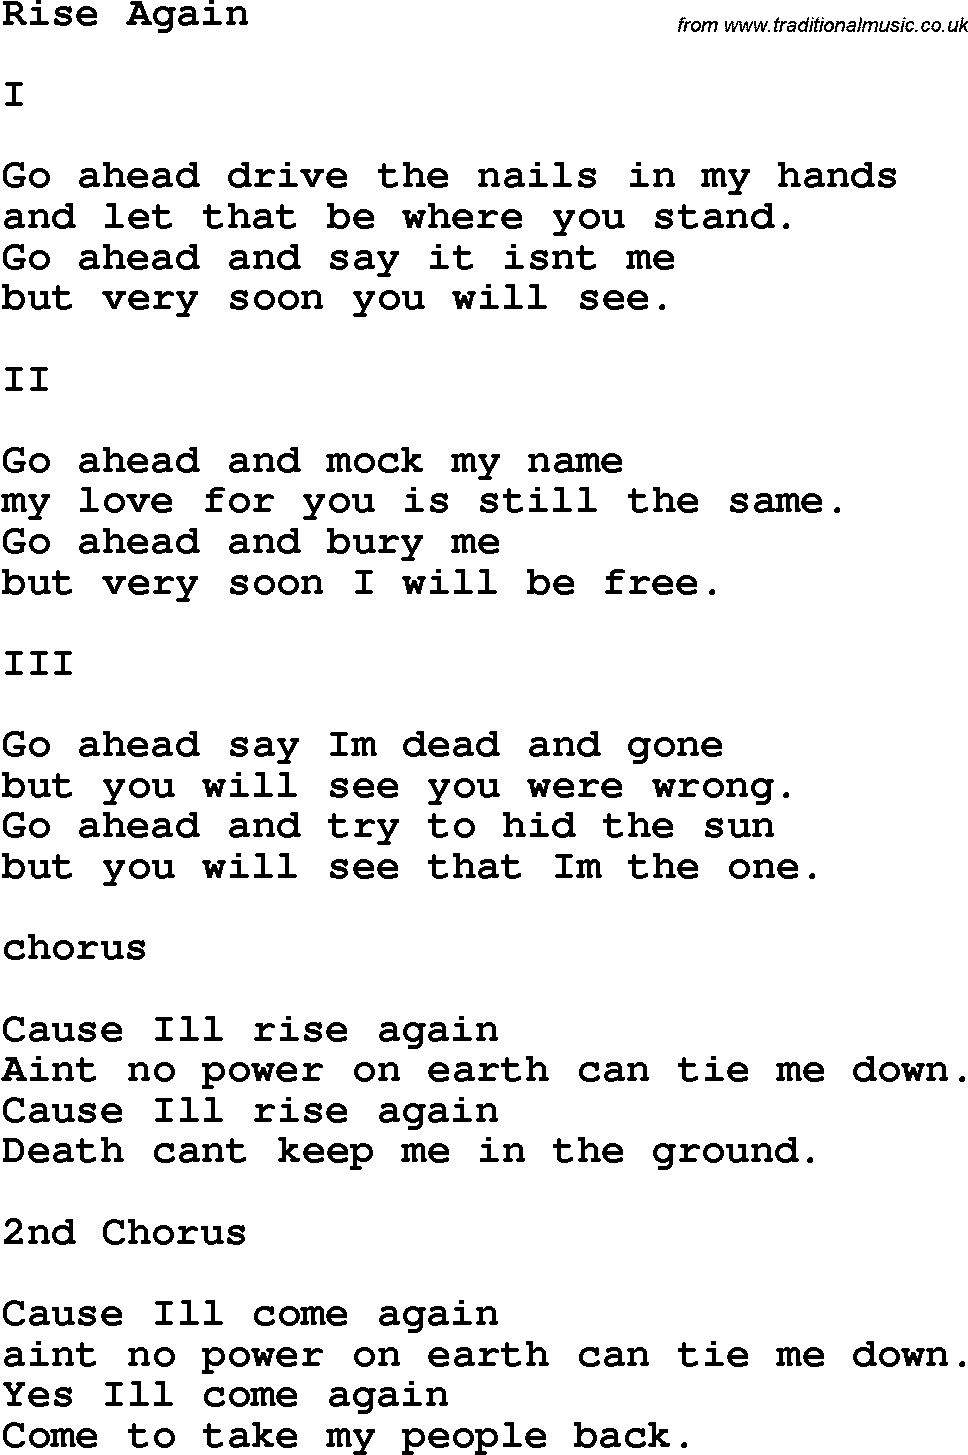 Country, Southern and Bluegrass Gospel Song Rise Again lyrics